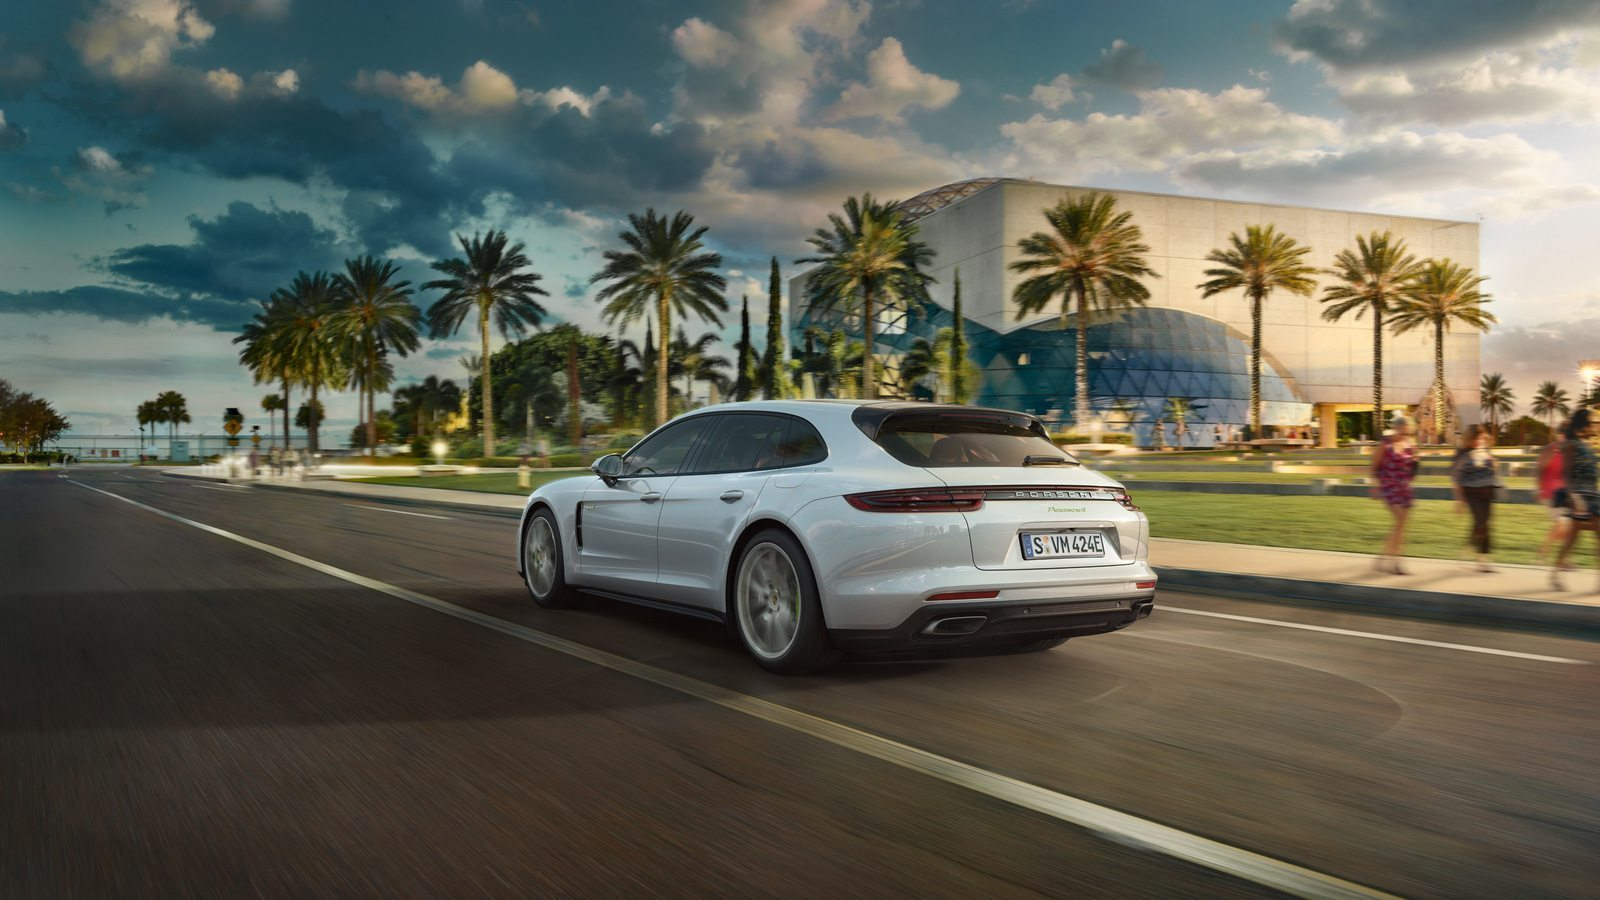 2017 porsche panamera 4 e hybrid price in uae specs review in dubai abu dhabi sharjah